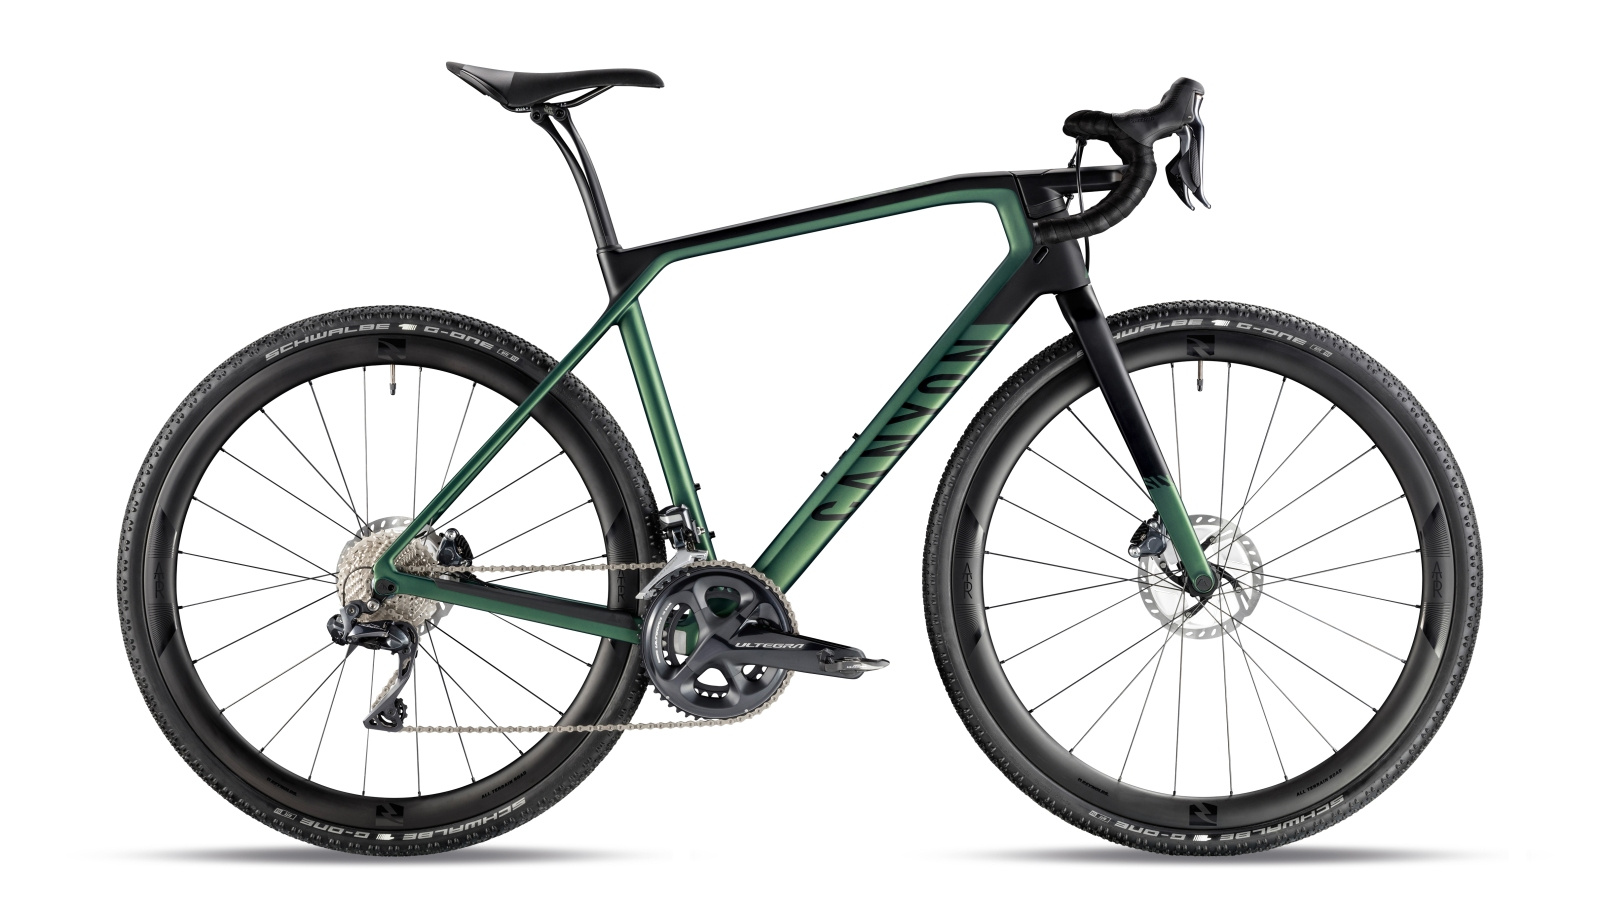 Canyon Grail Bike Review: 4 Things You Need to Know